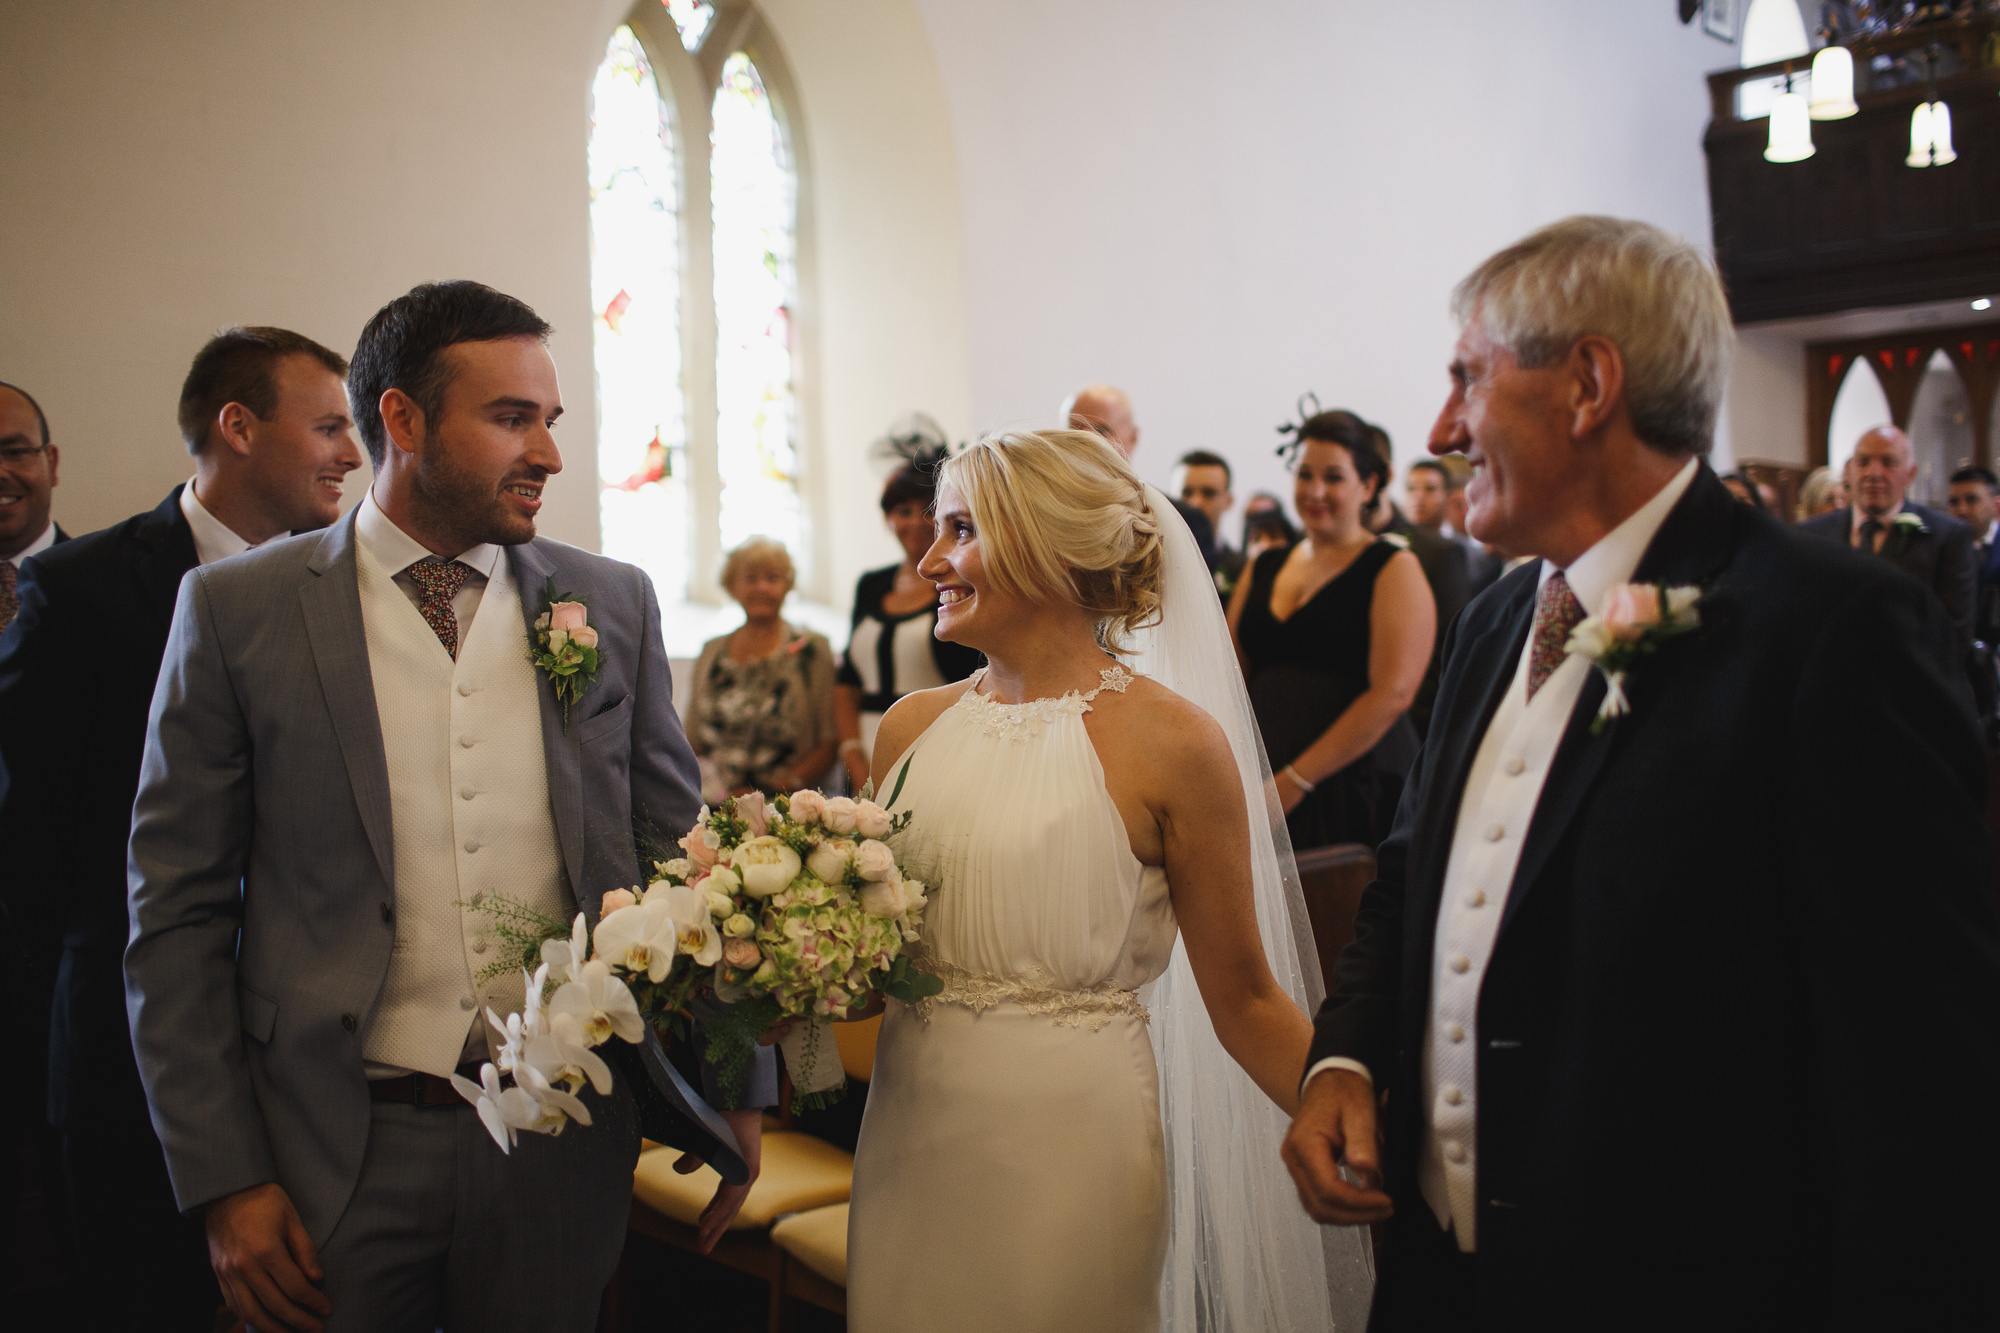 wedding-photography-mitton-hall-26